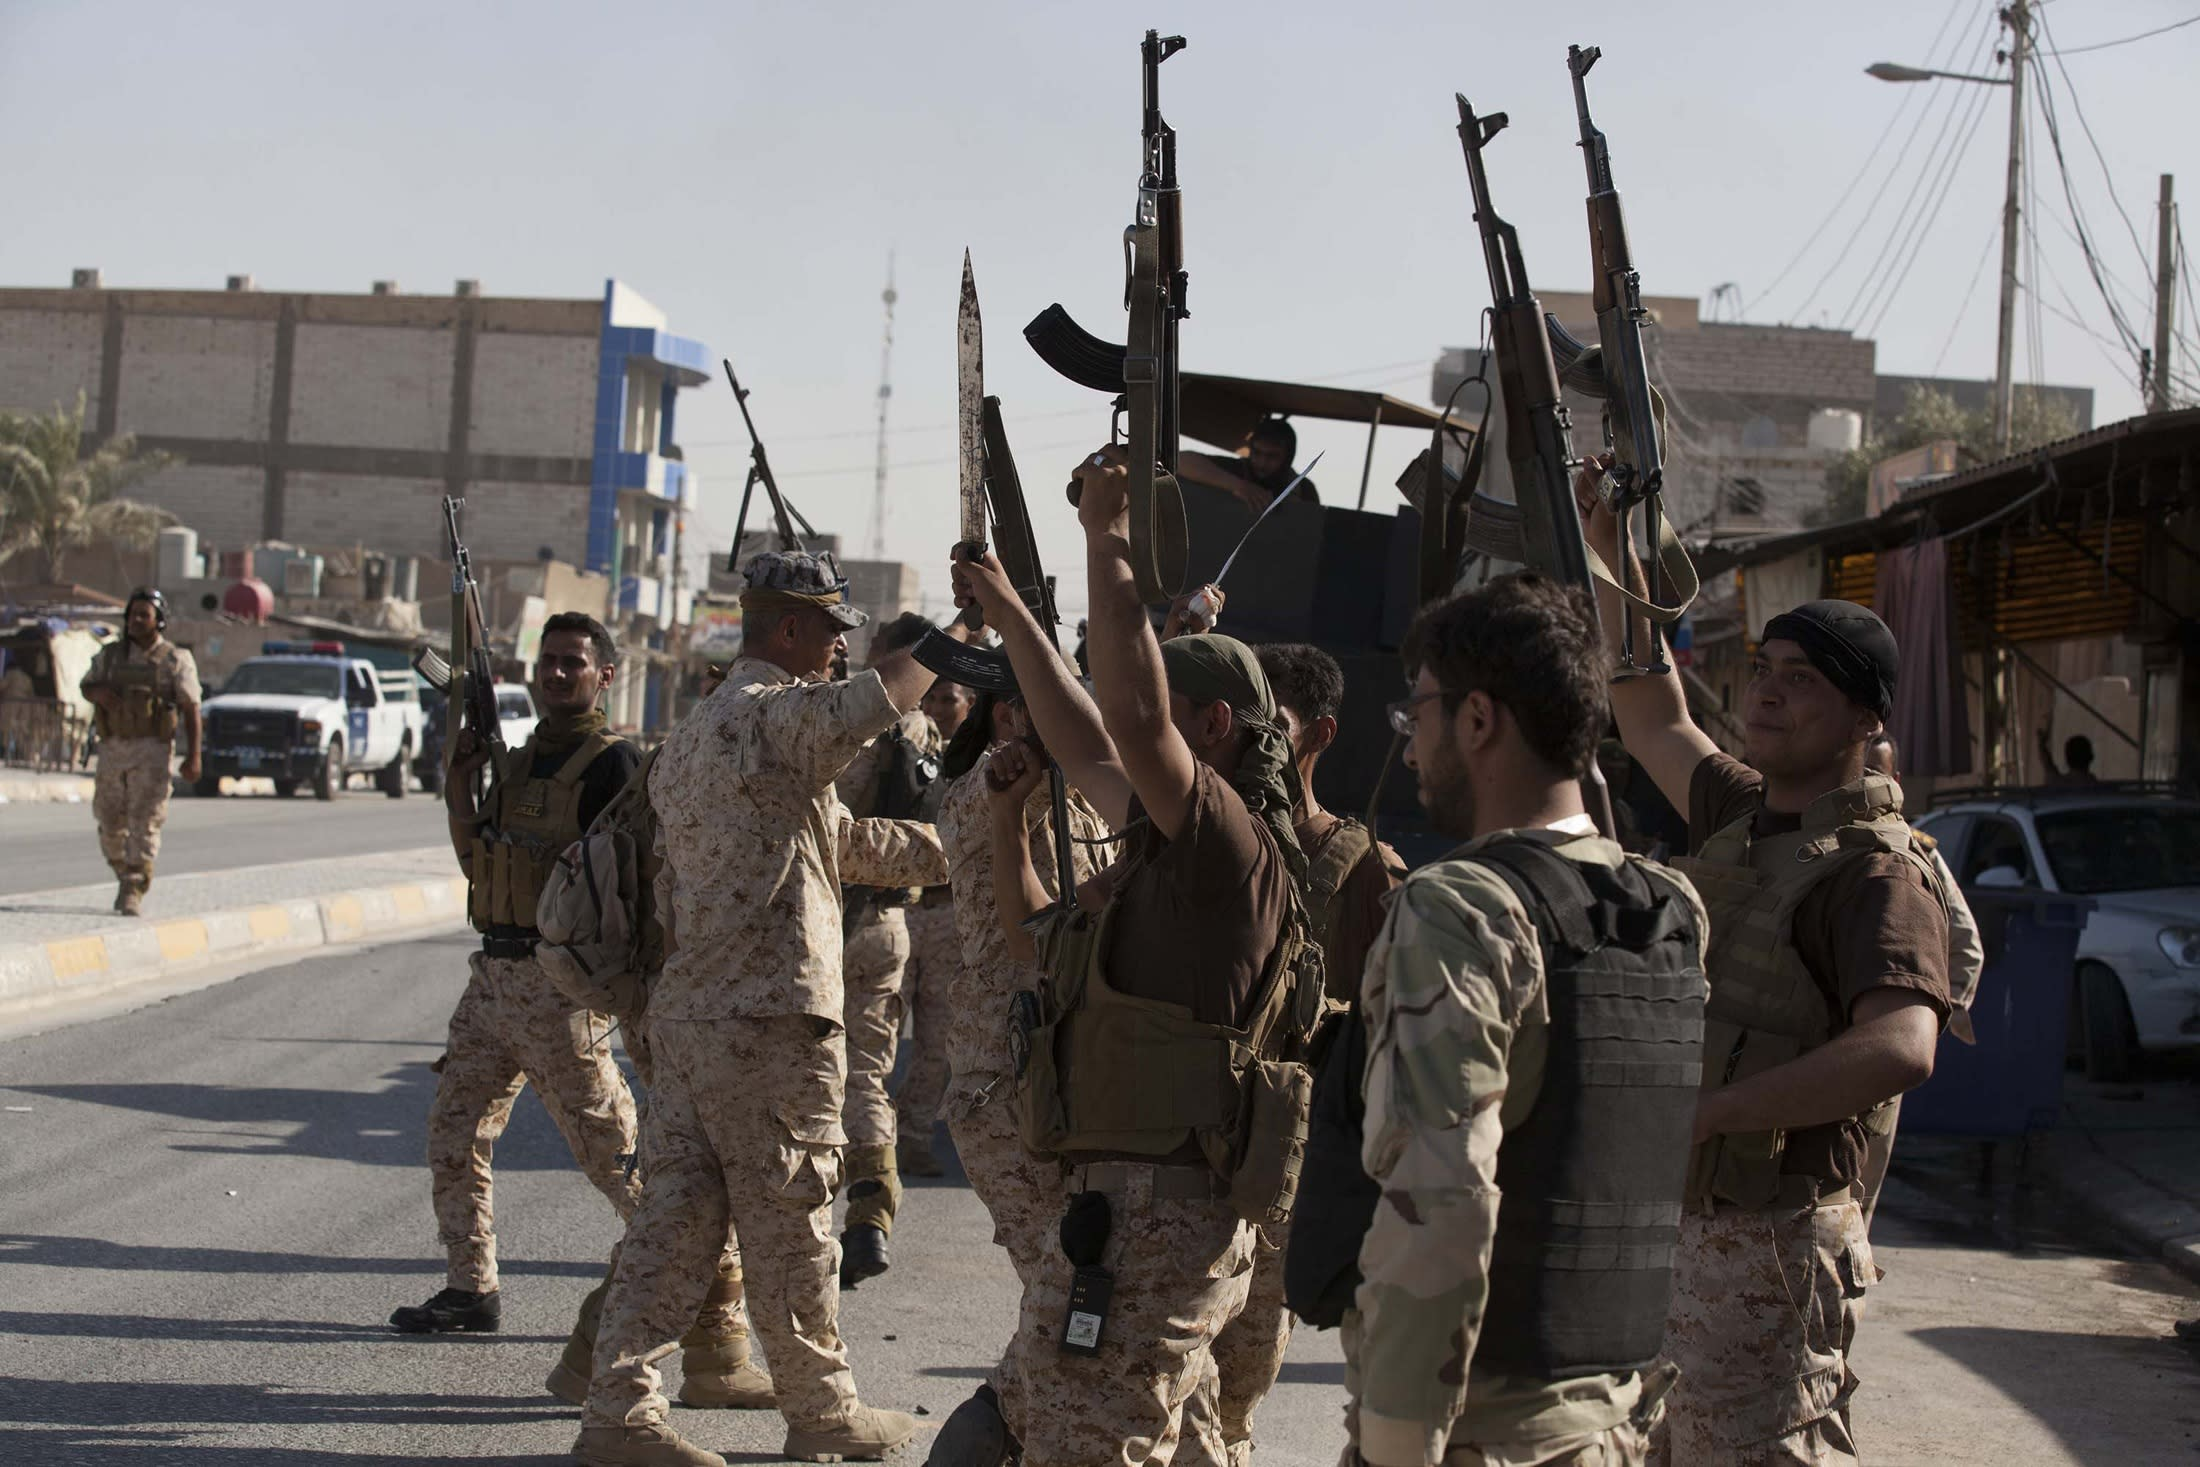 Members of the Iraqi security forces gesture after clashes with followers of Shi'ite cleric Sarkhi in Karbala